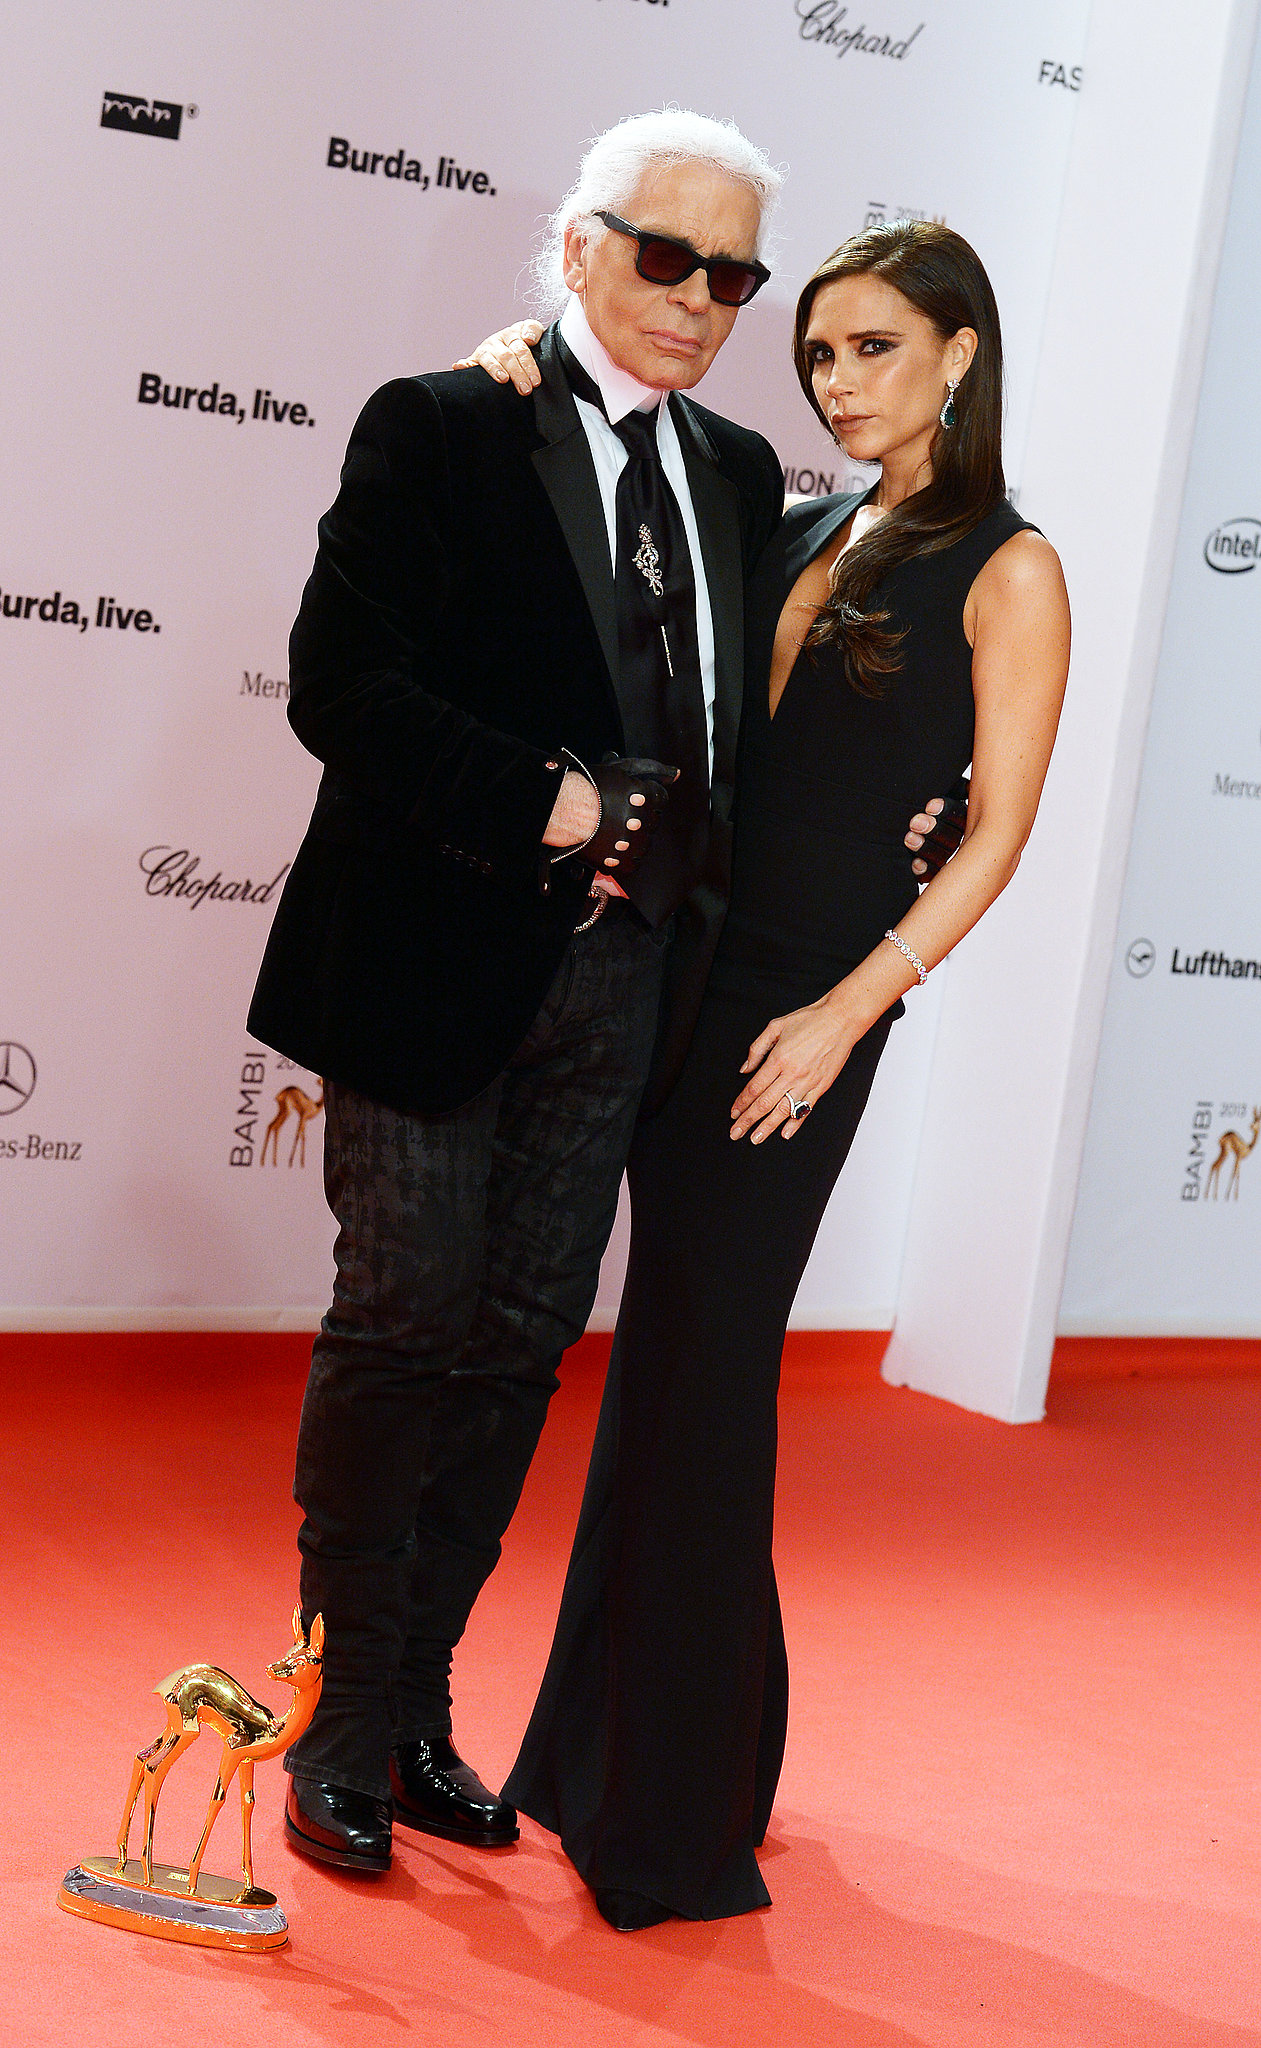 Karl Lagerfeld and Victoria Beckham in Chopard at the Bambi Awards.